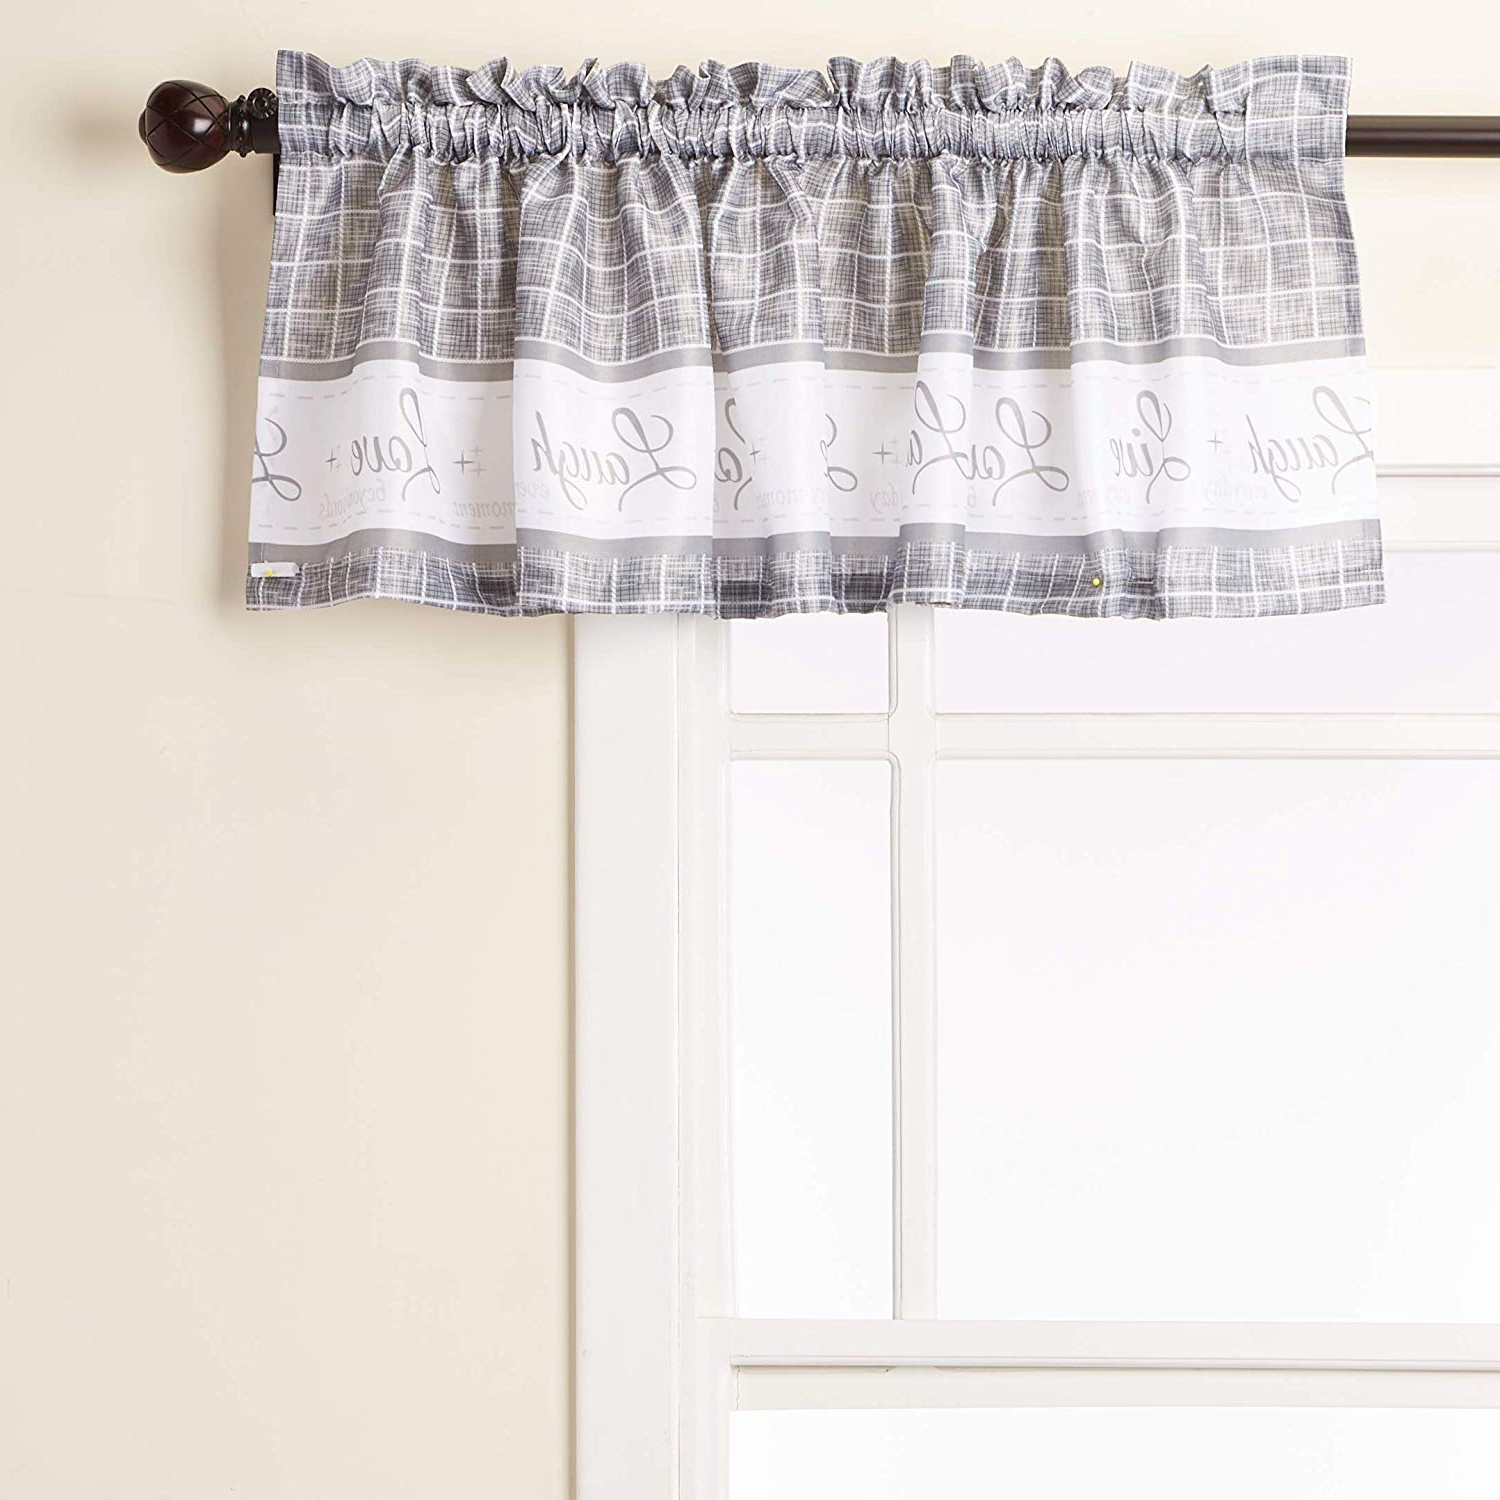 Live, Love, Laugh Window Curtain Tier Pair And Valance Sets Intended For Most Recently Released Achim Live, Love, Laugh Window Curtain Tier Pair And Valance (View 2 of 20)